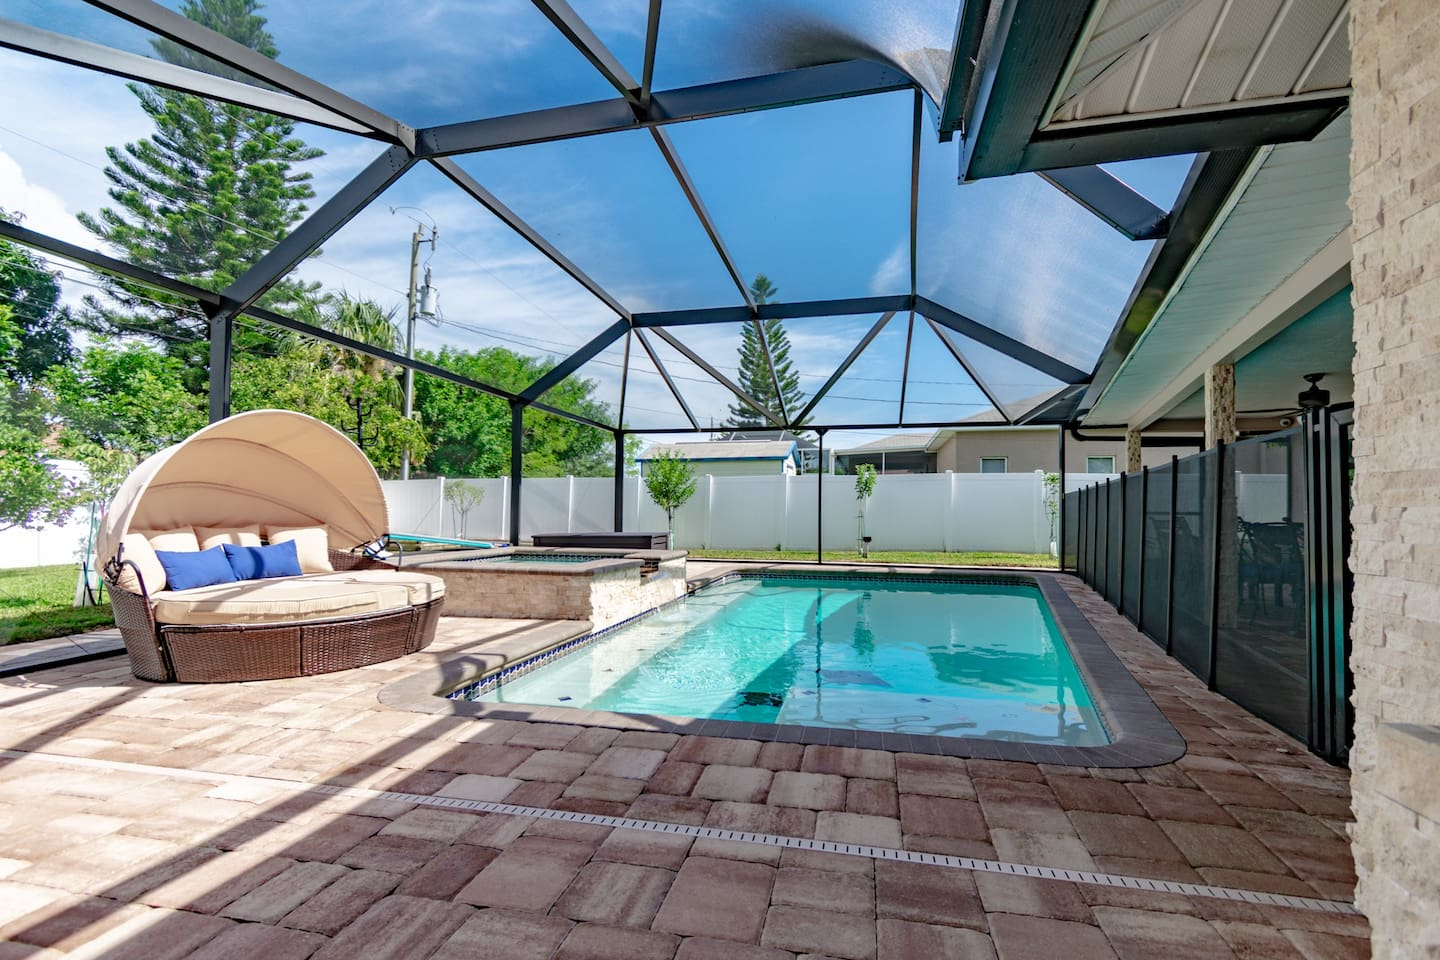 pool with spa and cabana for two. Child proof gating can be removed from pool to open to barbecue and seating.